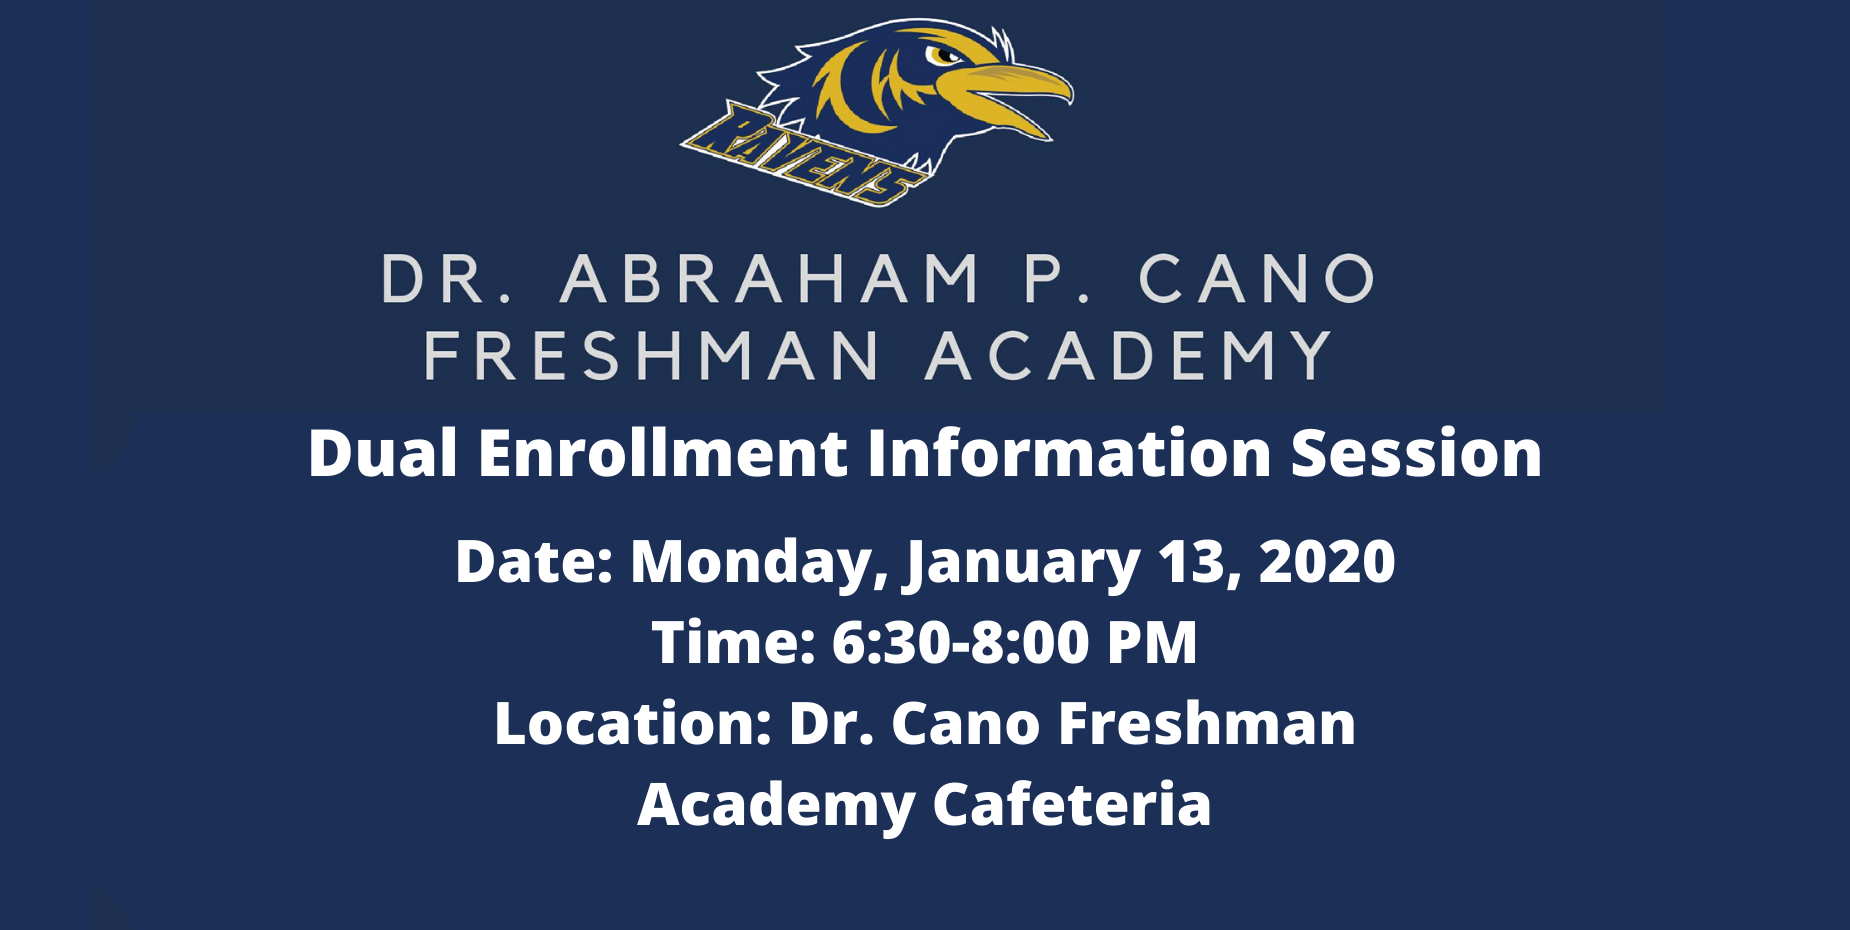 Image shows Dr. Cano Academy's mascot and information about the dual enrollment session on January 13 at 6:30 PM